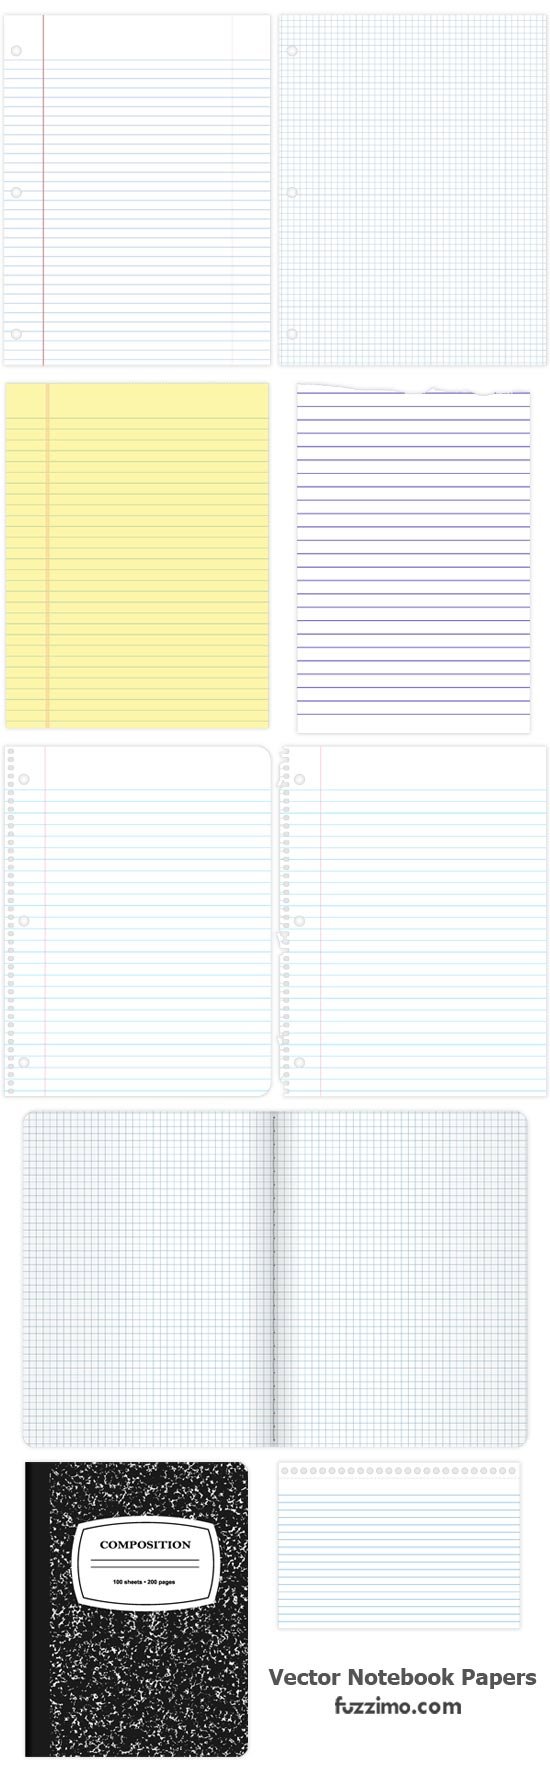 fzm-Vector-Notebook-Papers-02